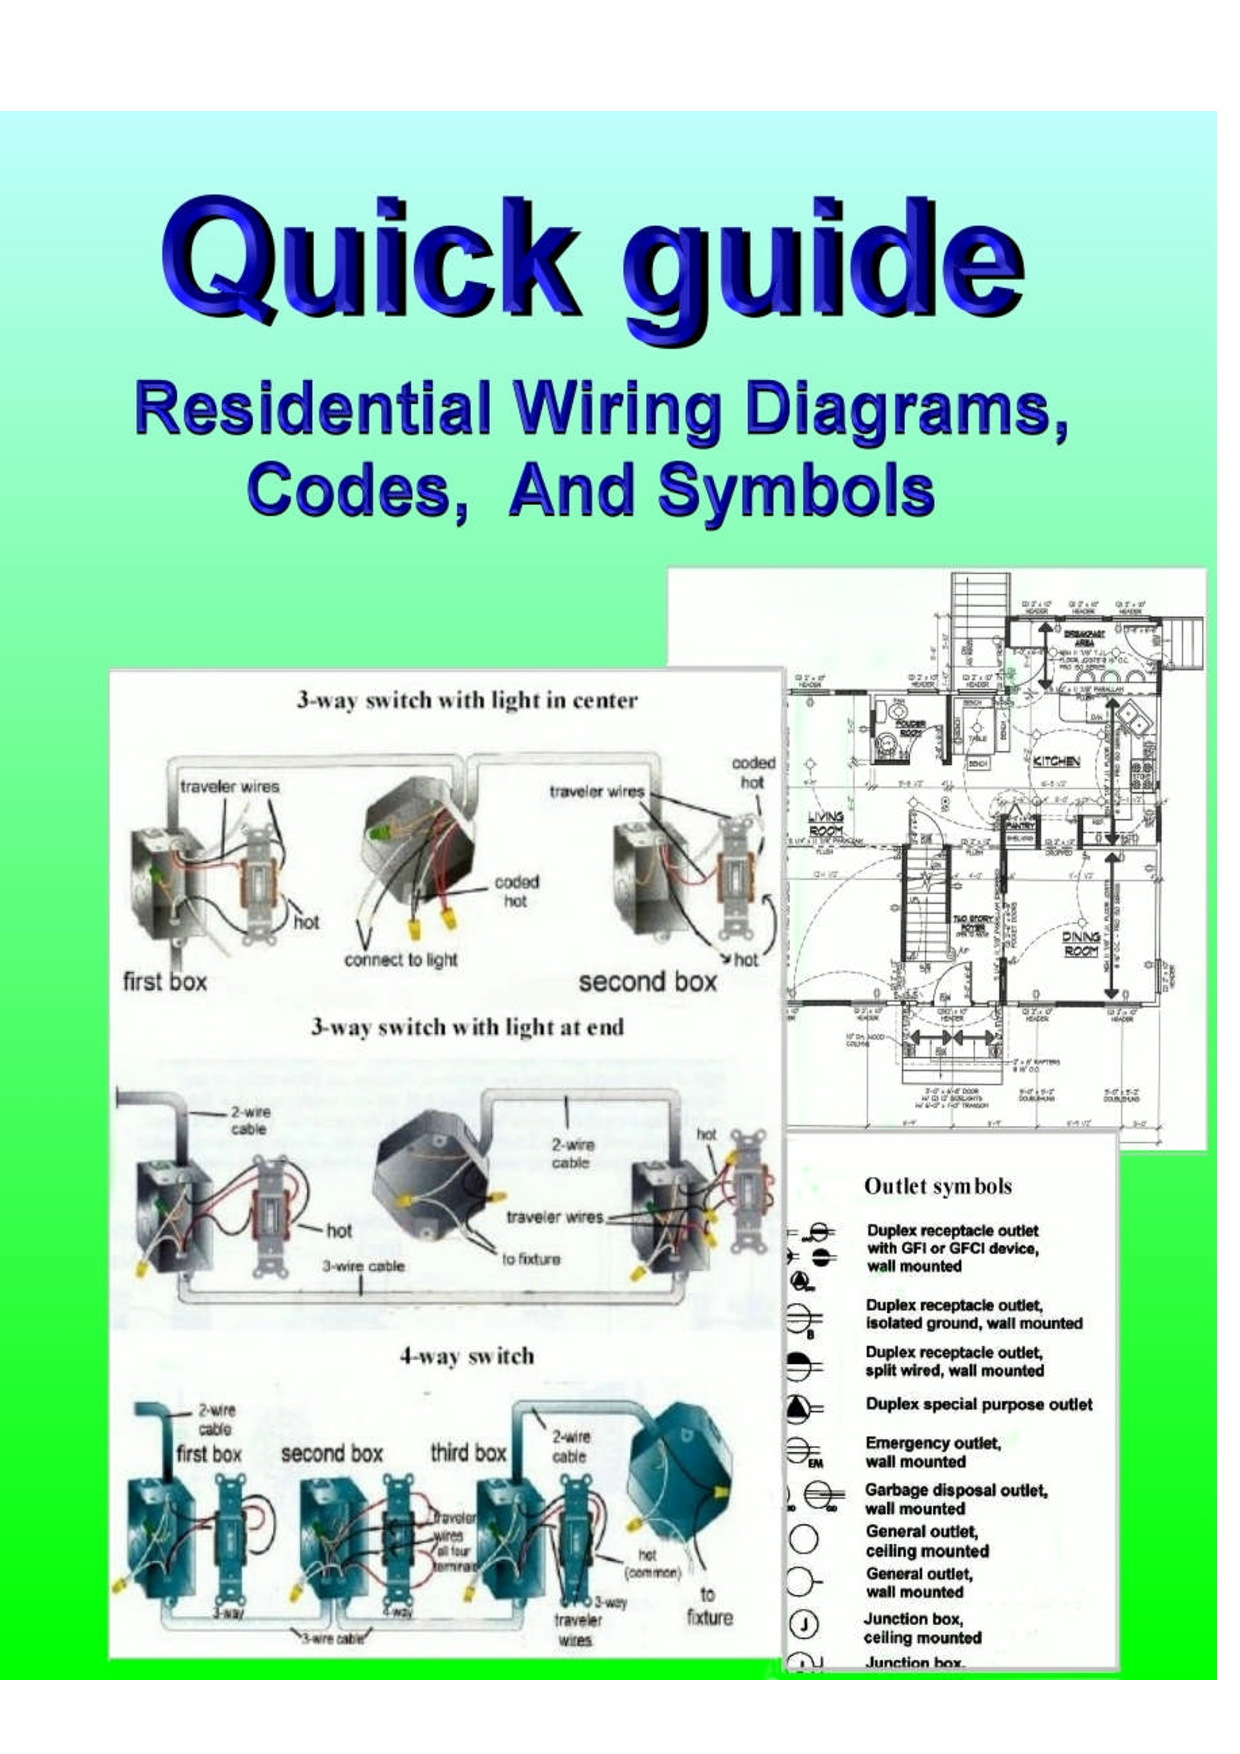 small resolution of home electrical wiring diagrams pdf download legal documents 39 wiring diagram for house as well as home electrical outlet wiring